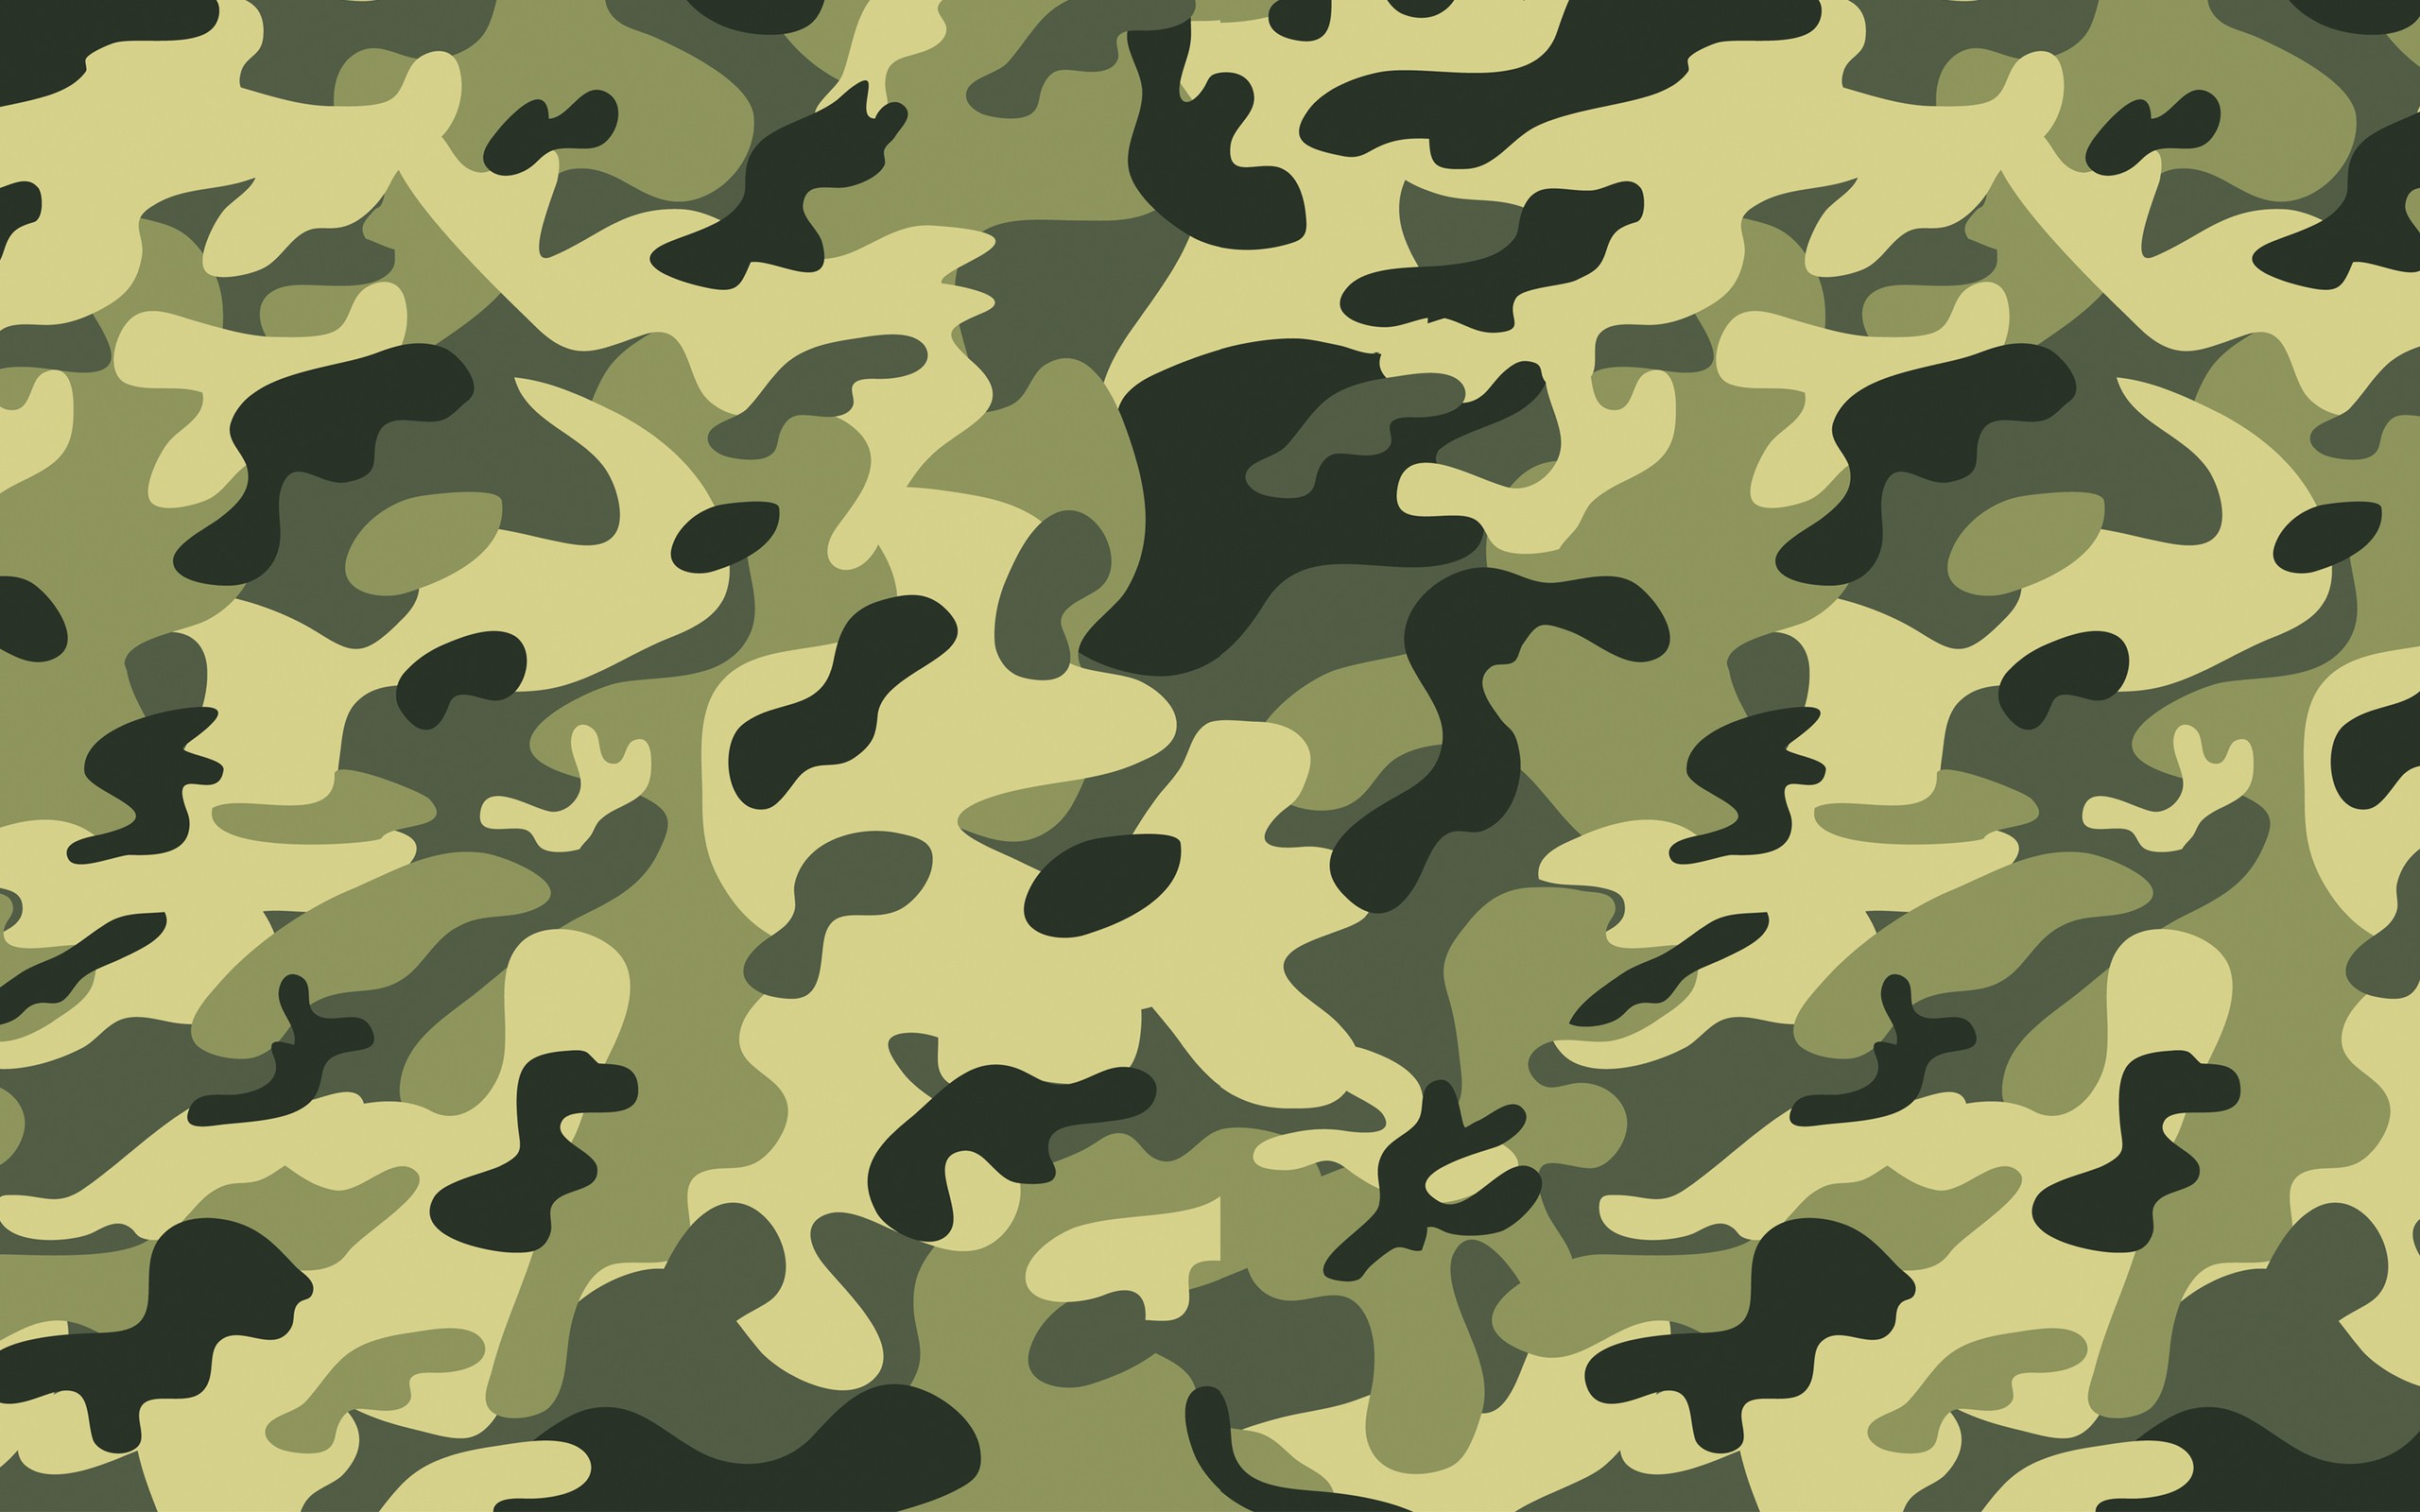 Green minimalistic military camouflage backgrounds 2560x1600